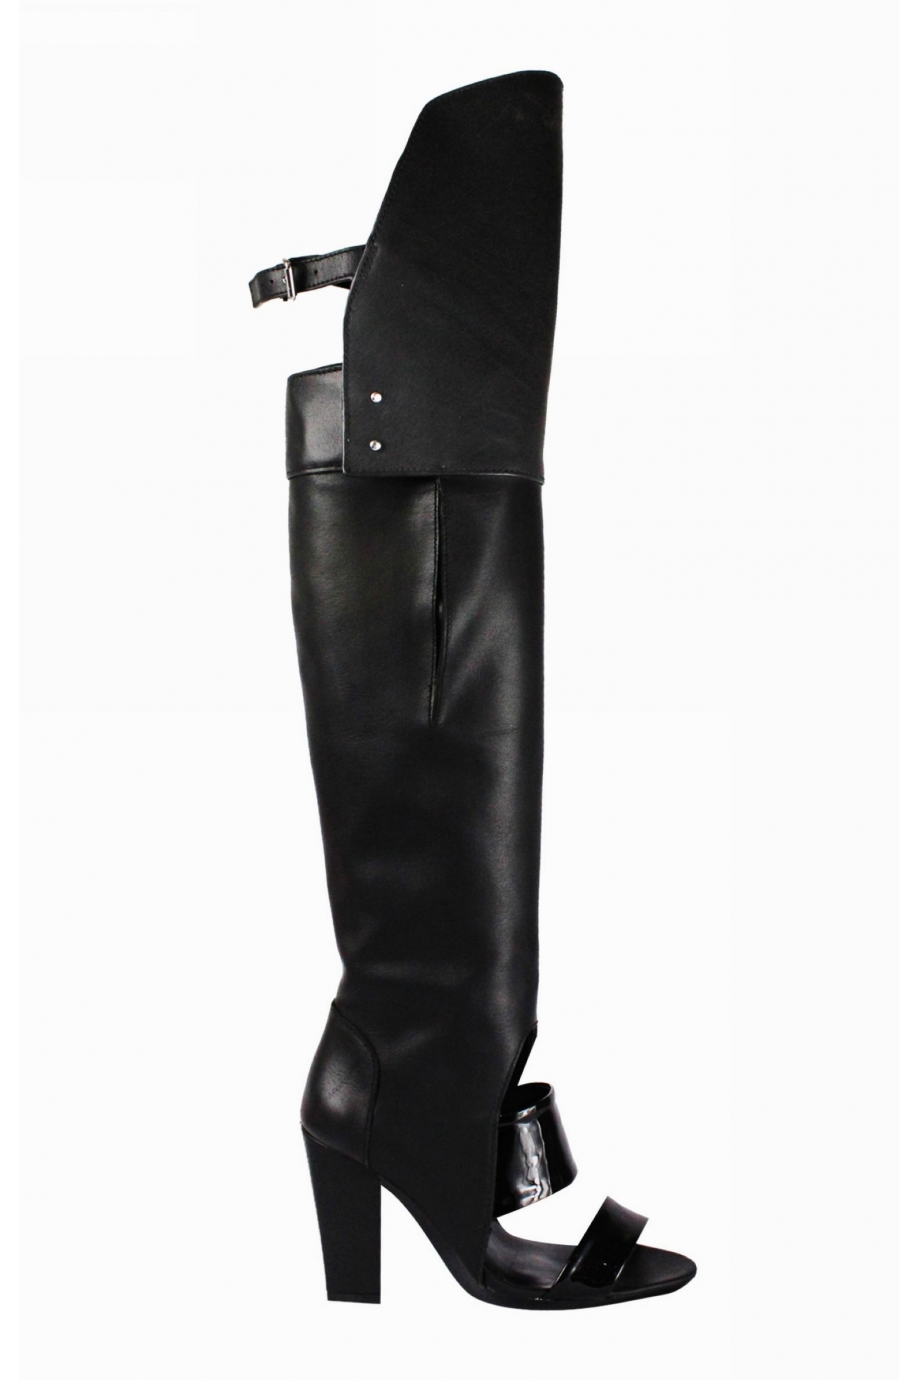 Exclusive - LIA Over The Knee Open Toe Boots |Black| In Shoes ...